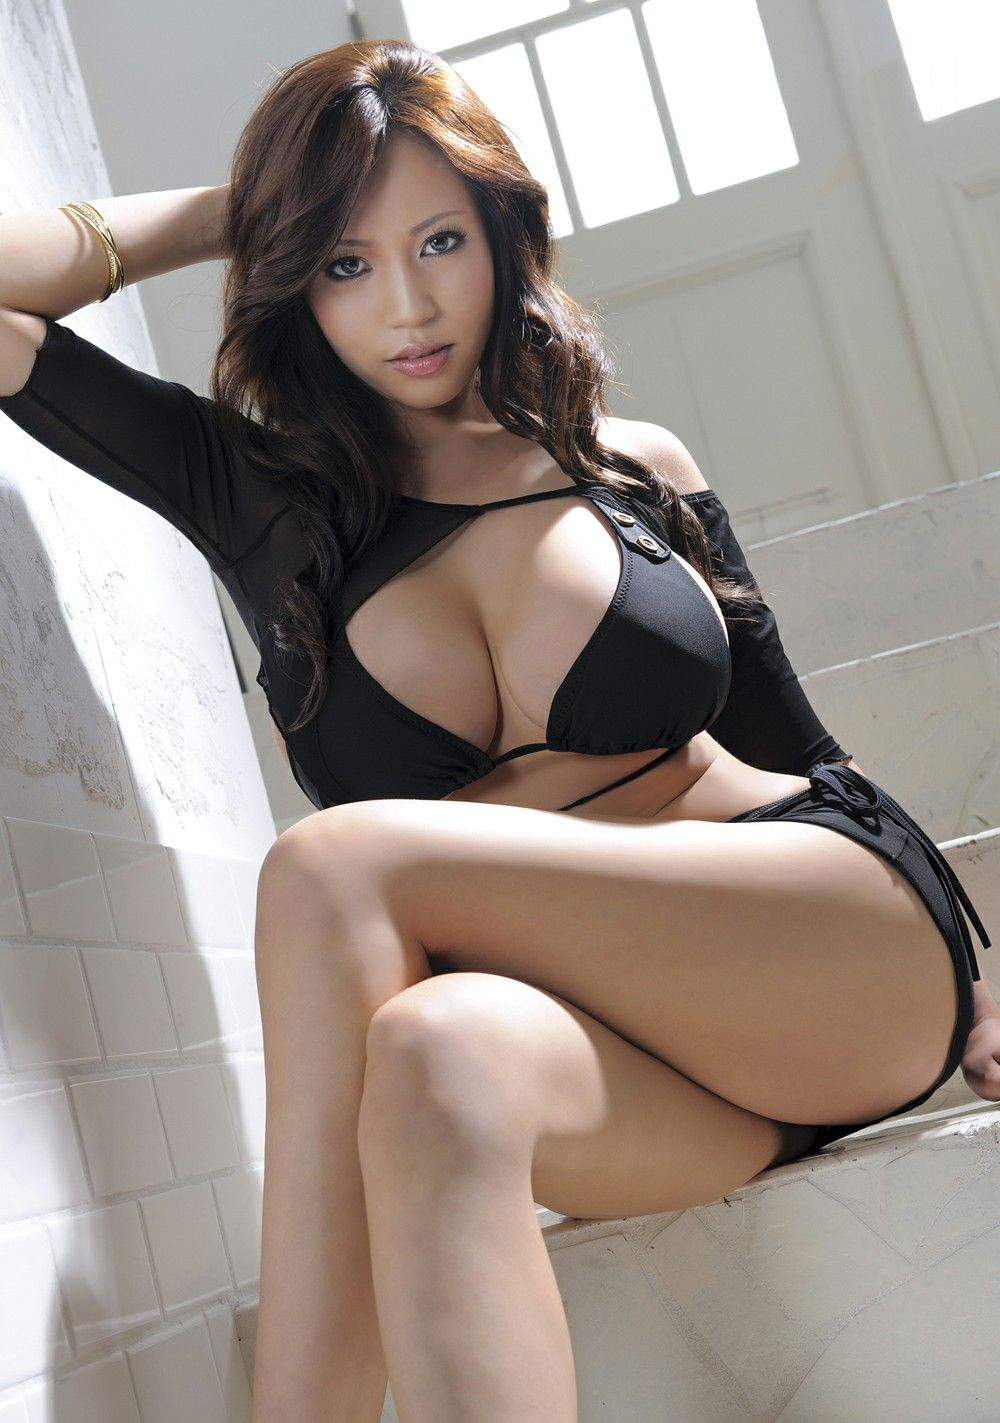 Sex asian girls pictures